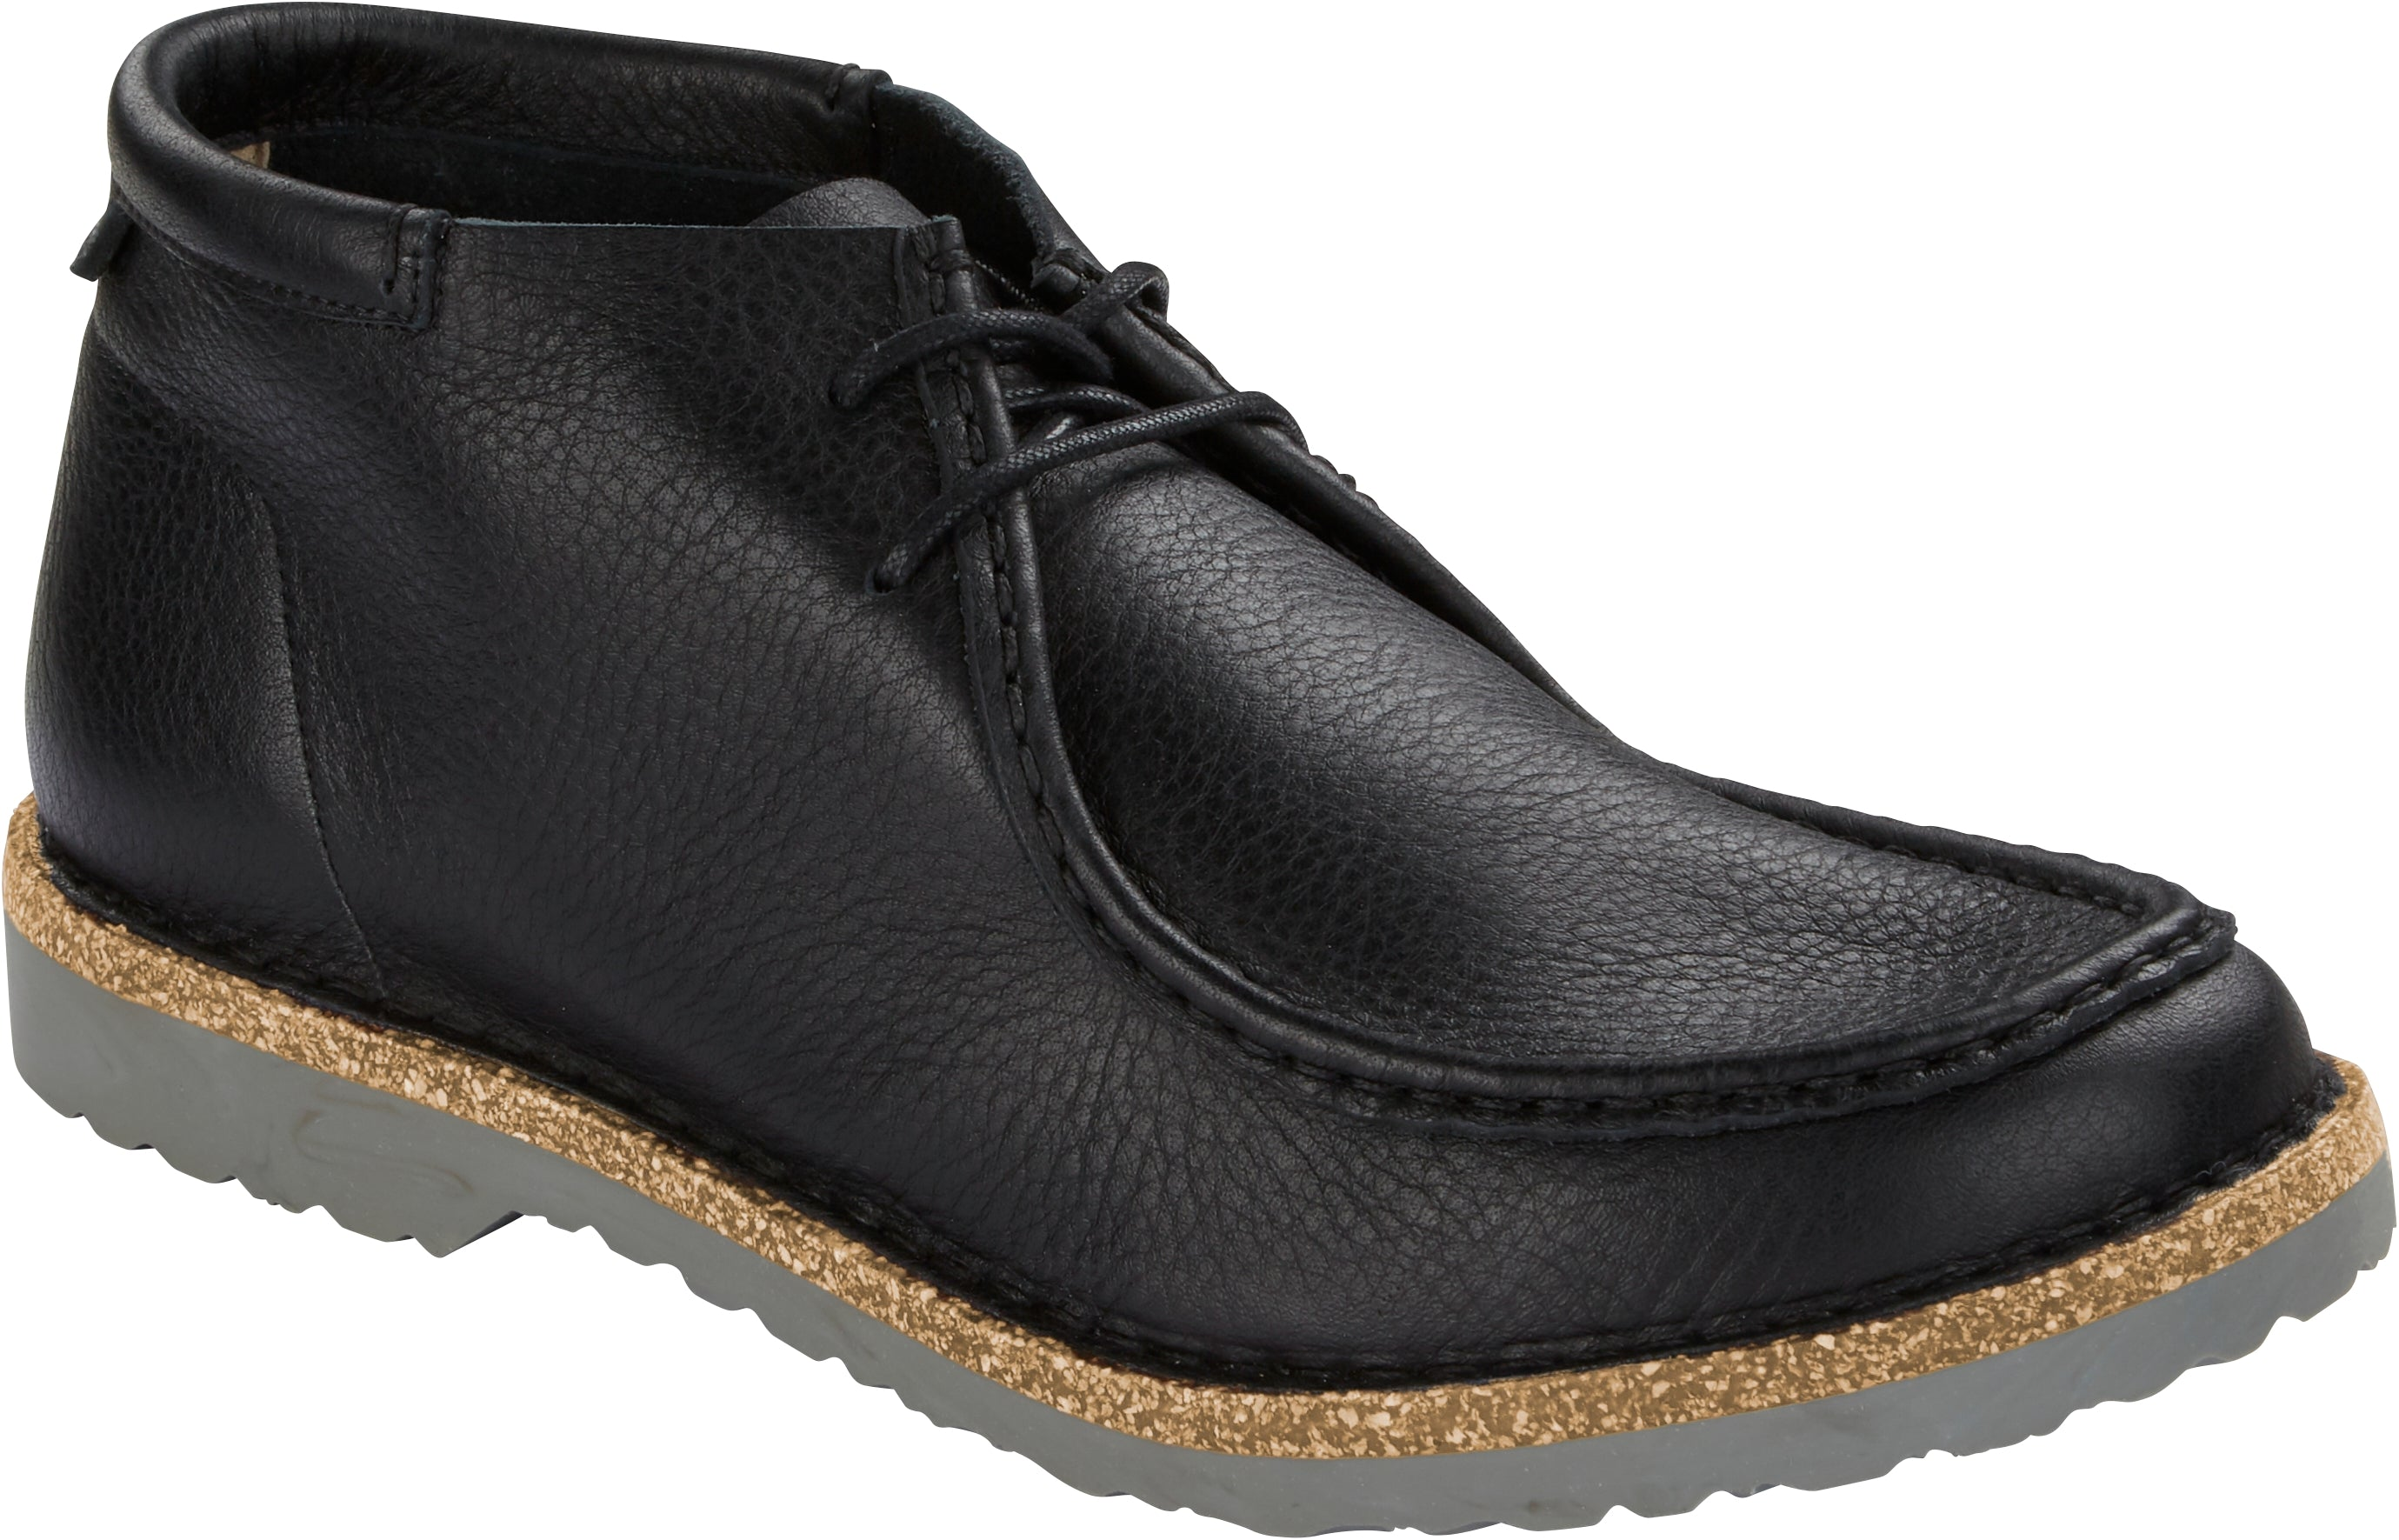 Delano High Men - Black Natural Leather